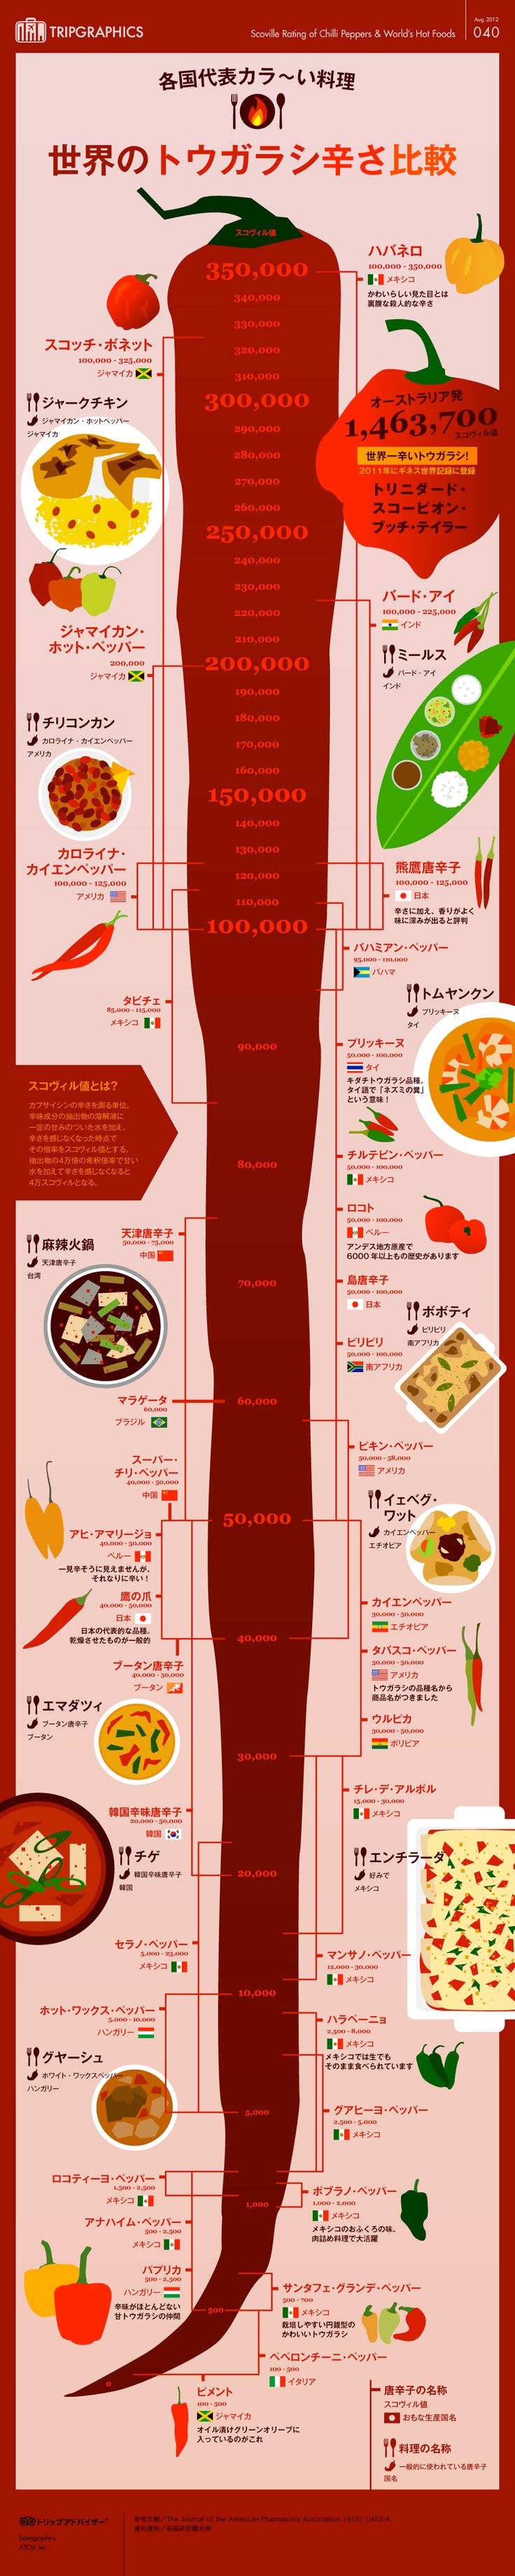 infographic on peppers